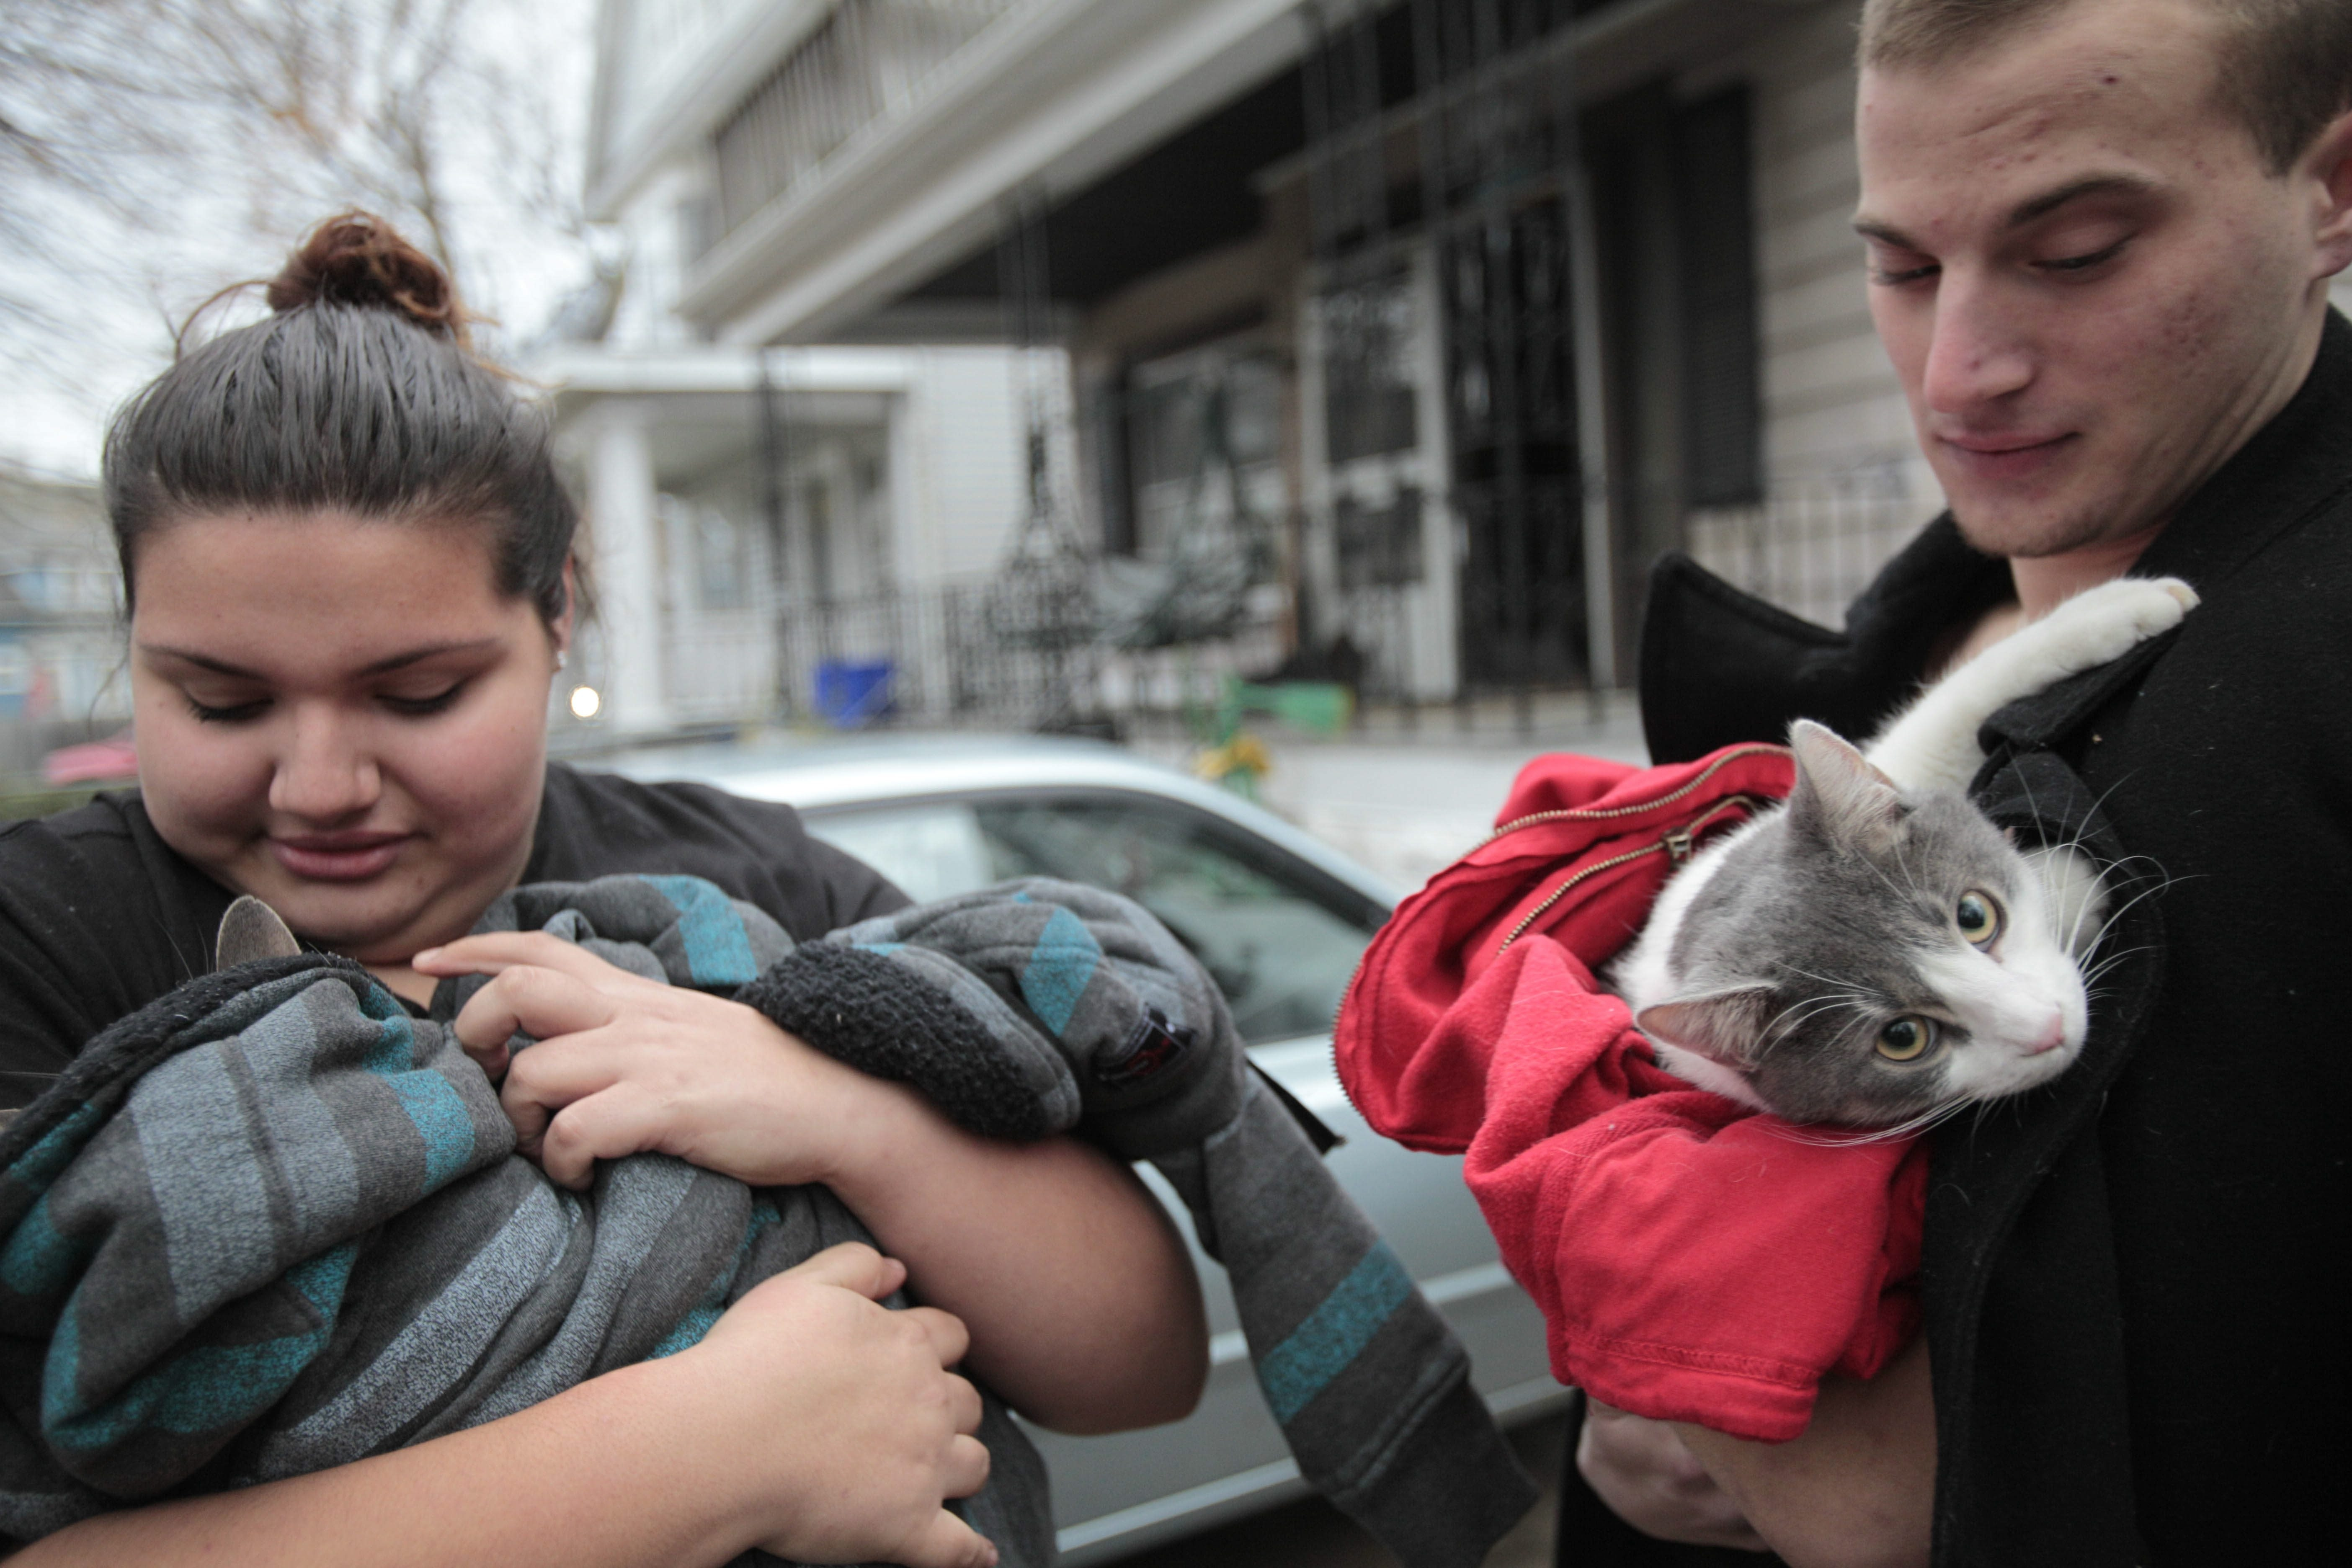 Amelia Luciano and Brett Lukasiewicz hold their cats, Lola and Sully respectively, after being routed from their home at 54 Remoleno St.in South Buffalo by an early morning fire. Their roommate was transported to South Buffalo Mercy Hospital. The cats were rescued from their apartment by firefighters.